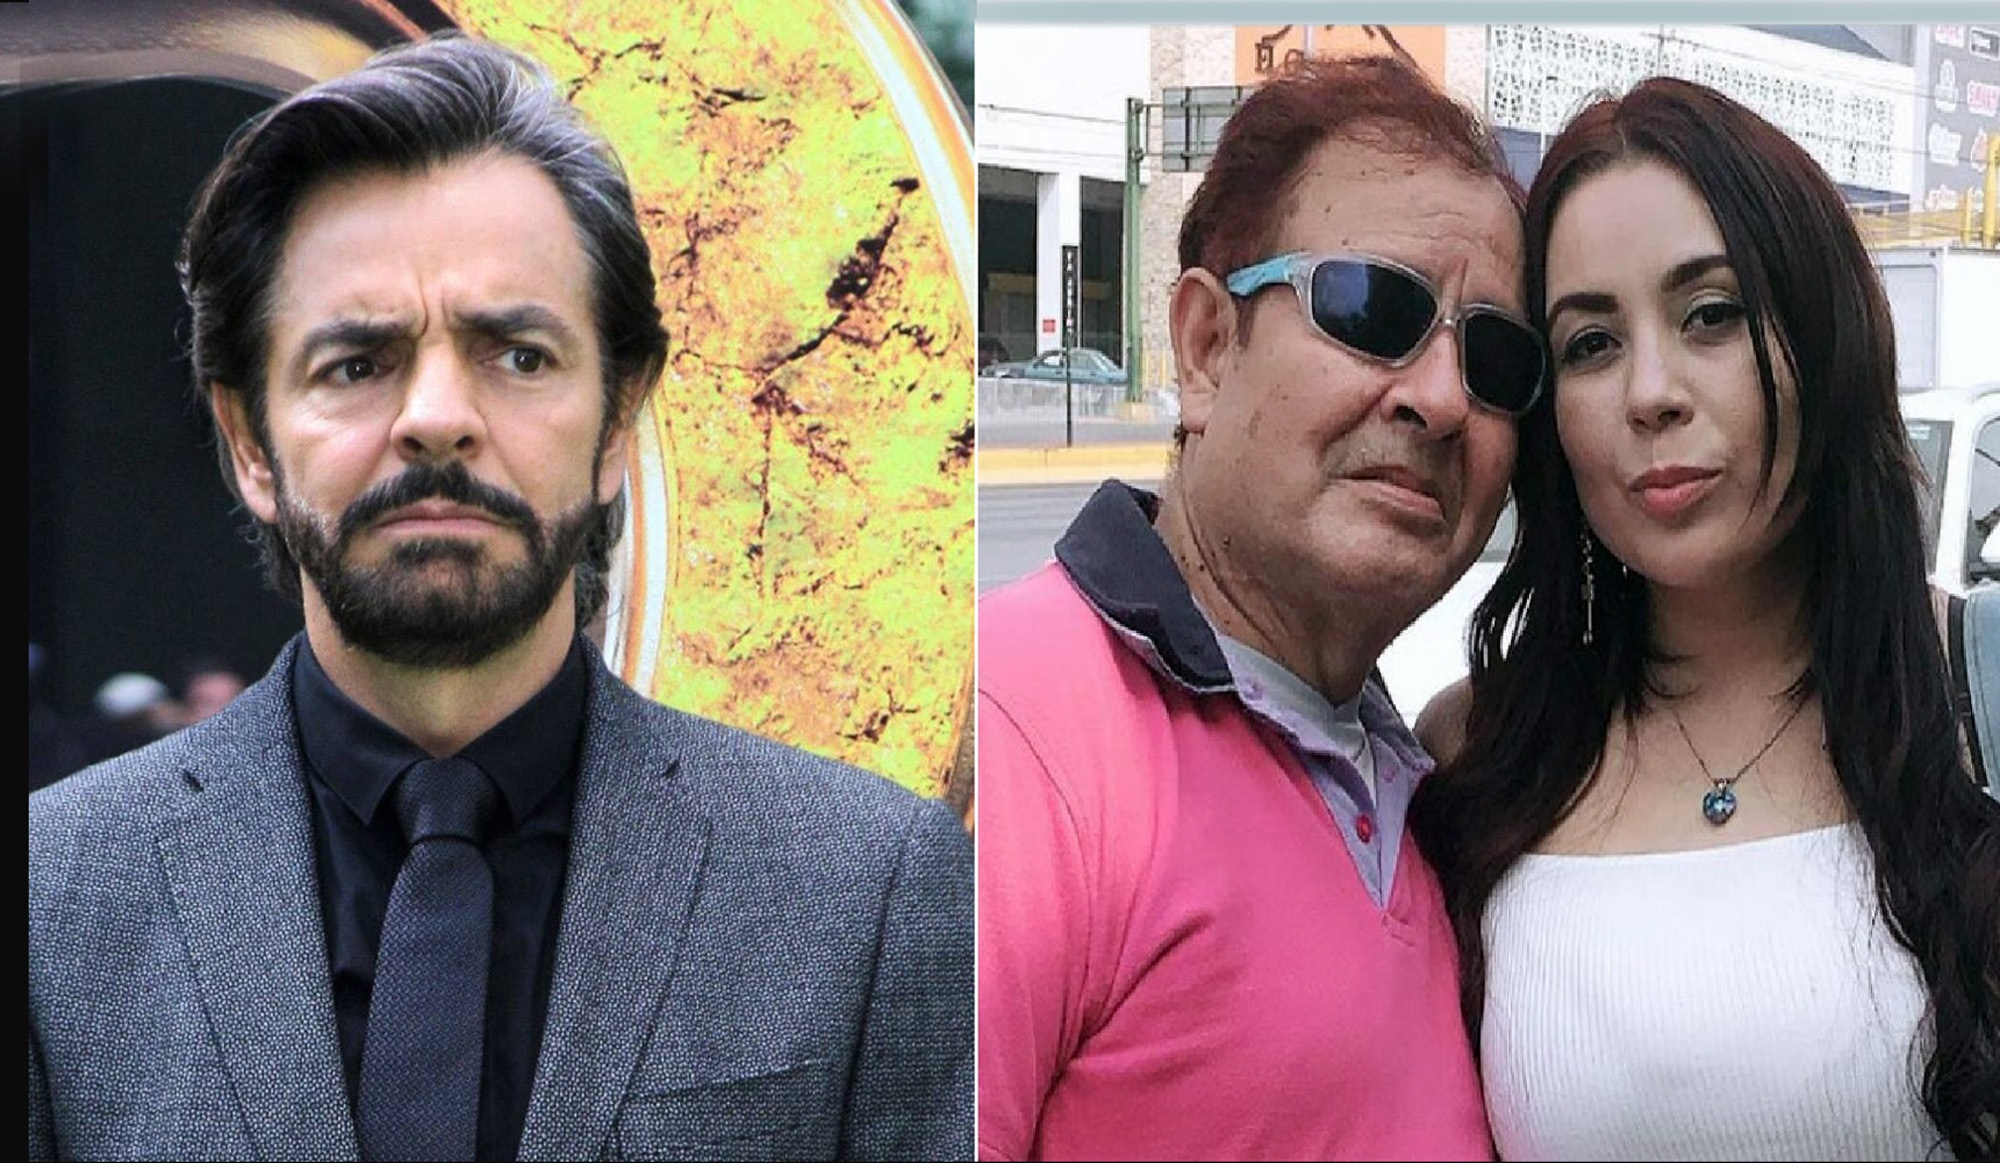 Eugenio Derbez confirms that Sammy's girlfriend disappeared when he saw the hospital bill